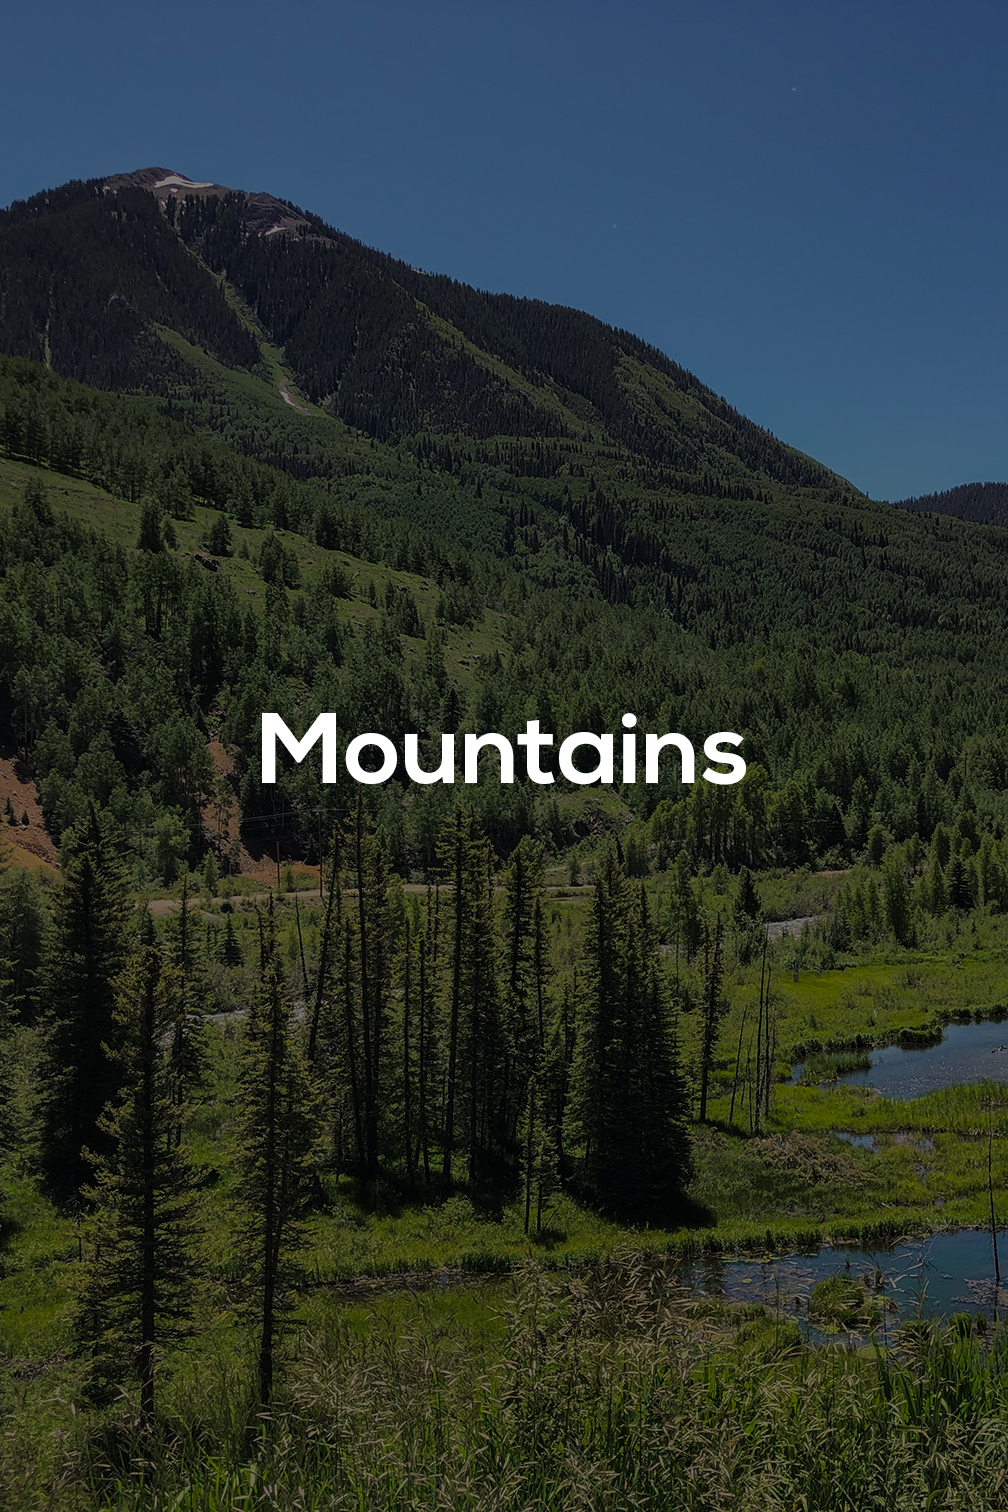 Mountains - title